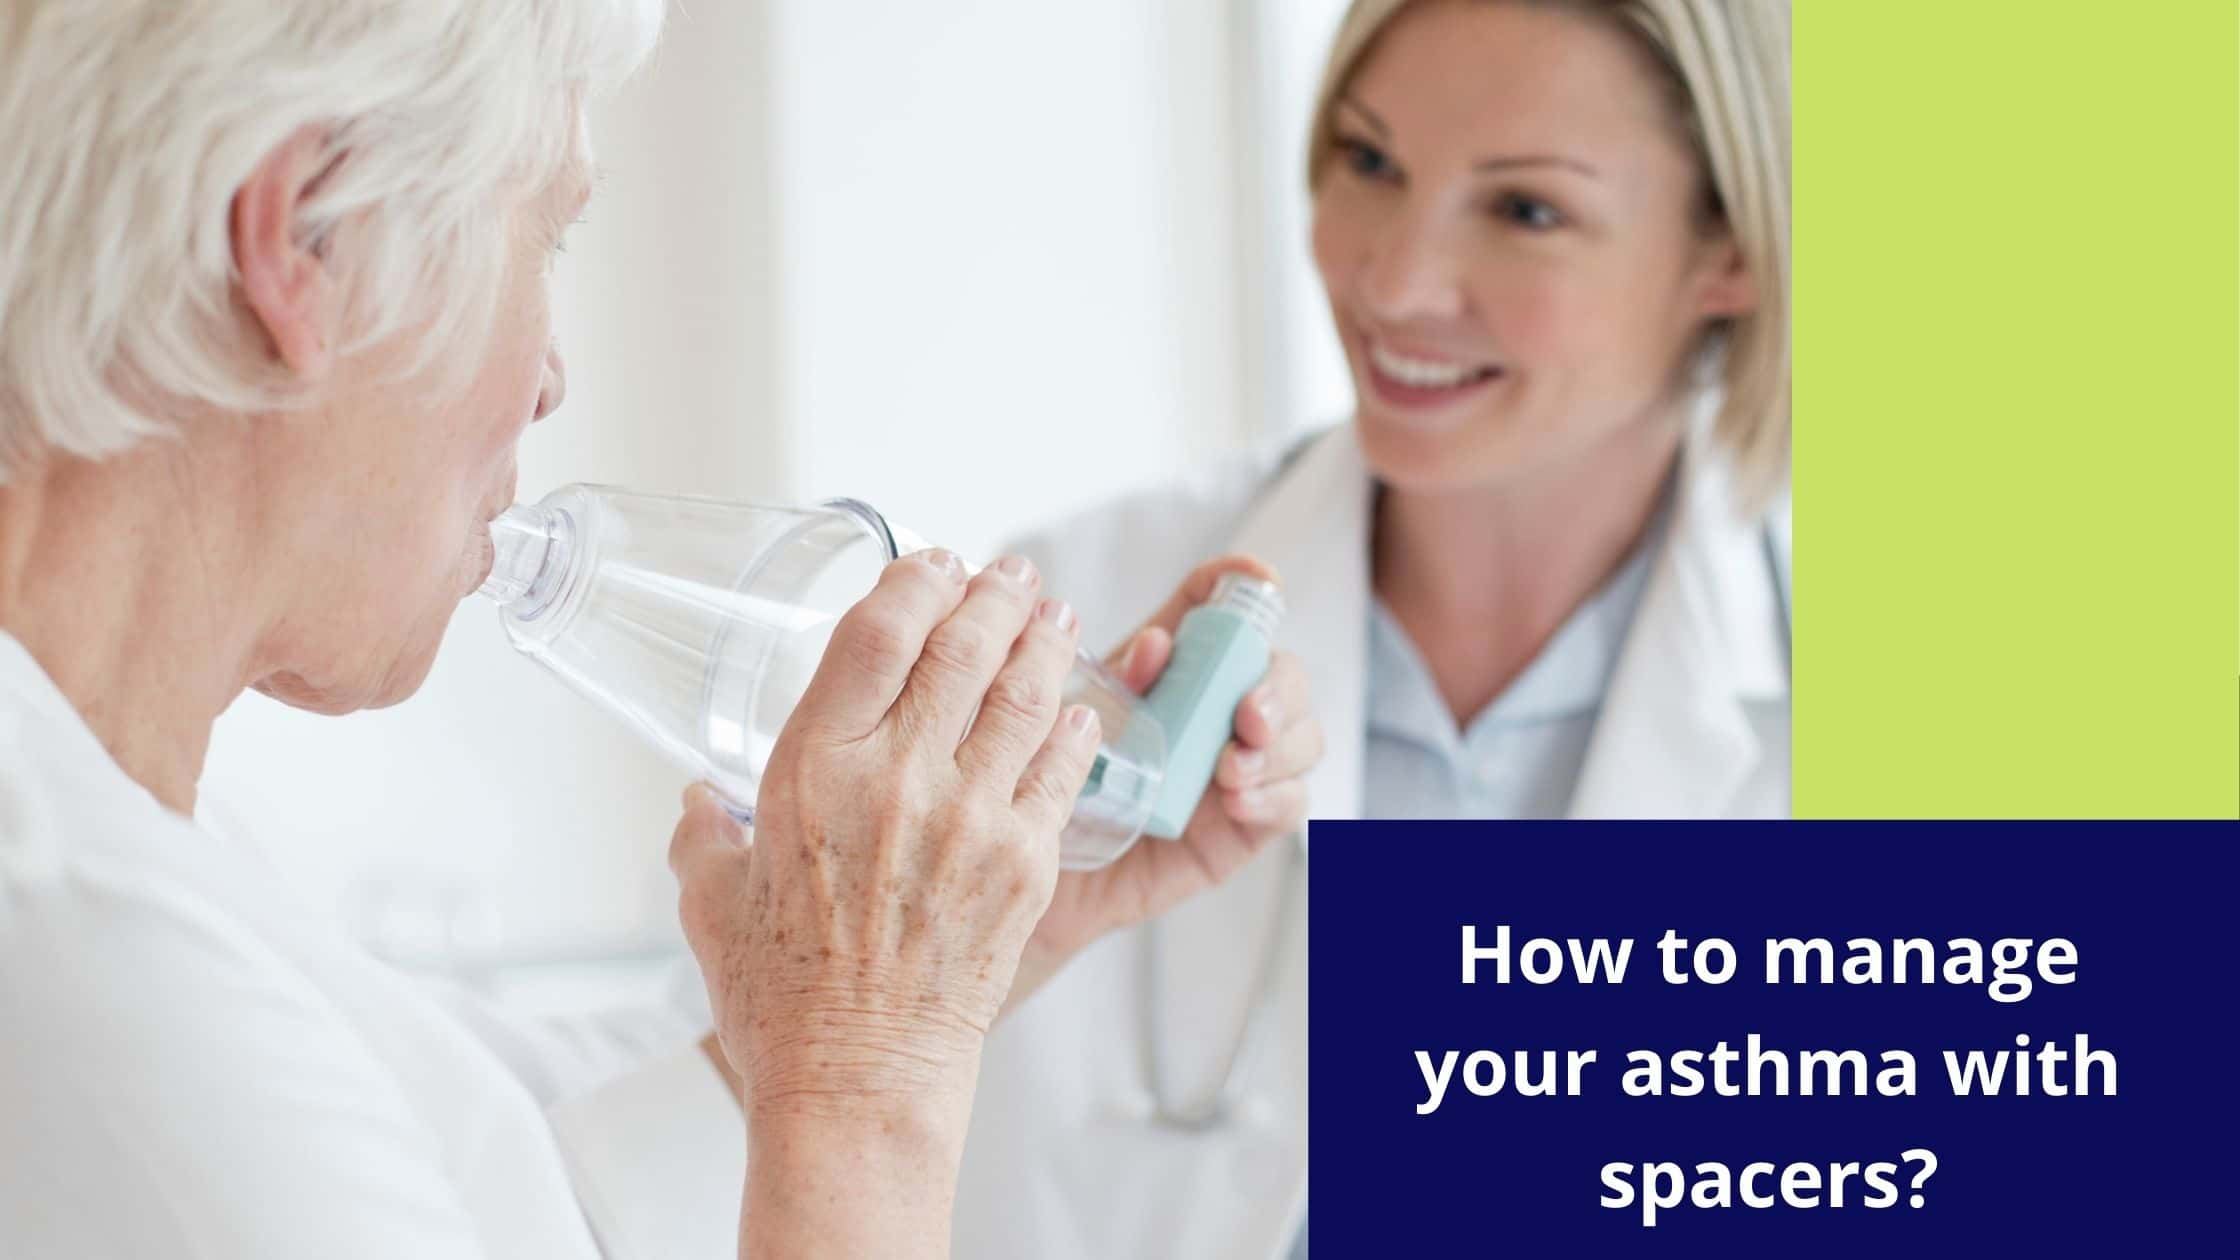 How to Manage Your Asthma with Spacers